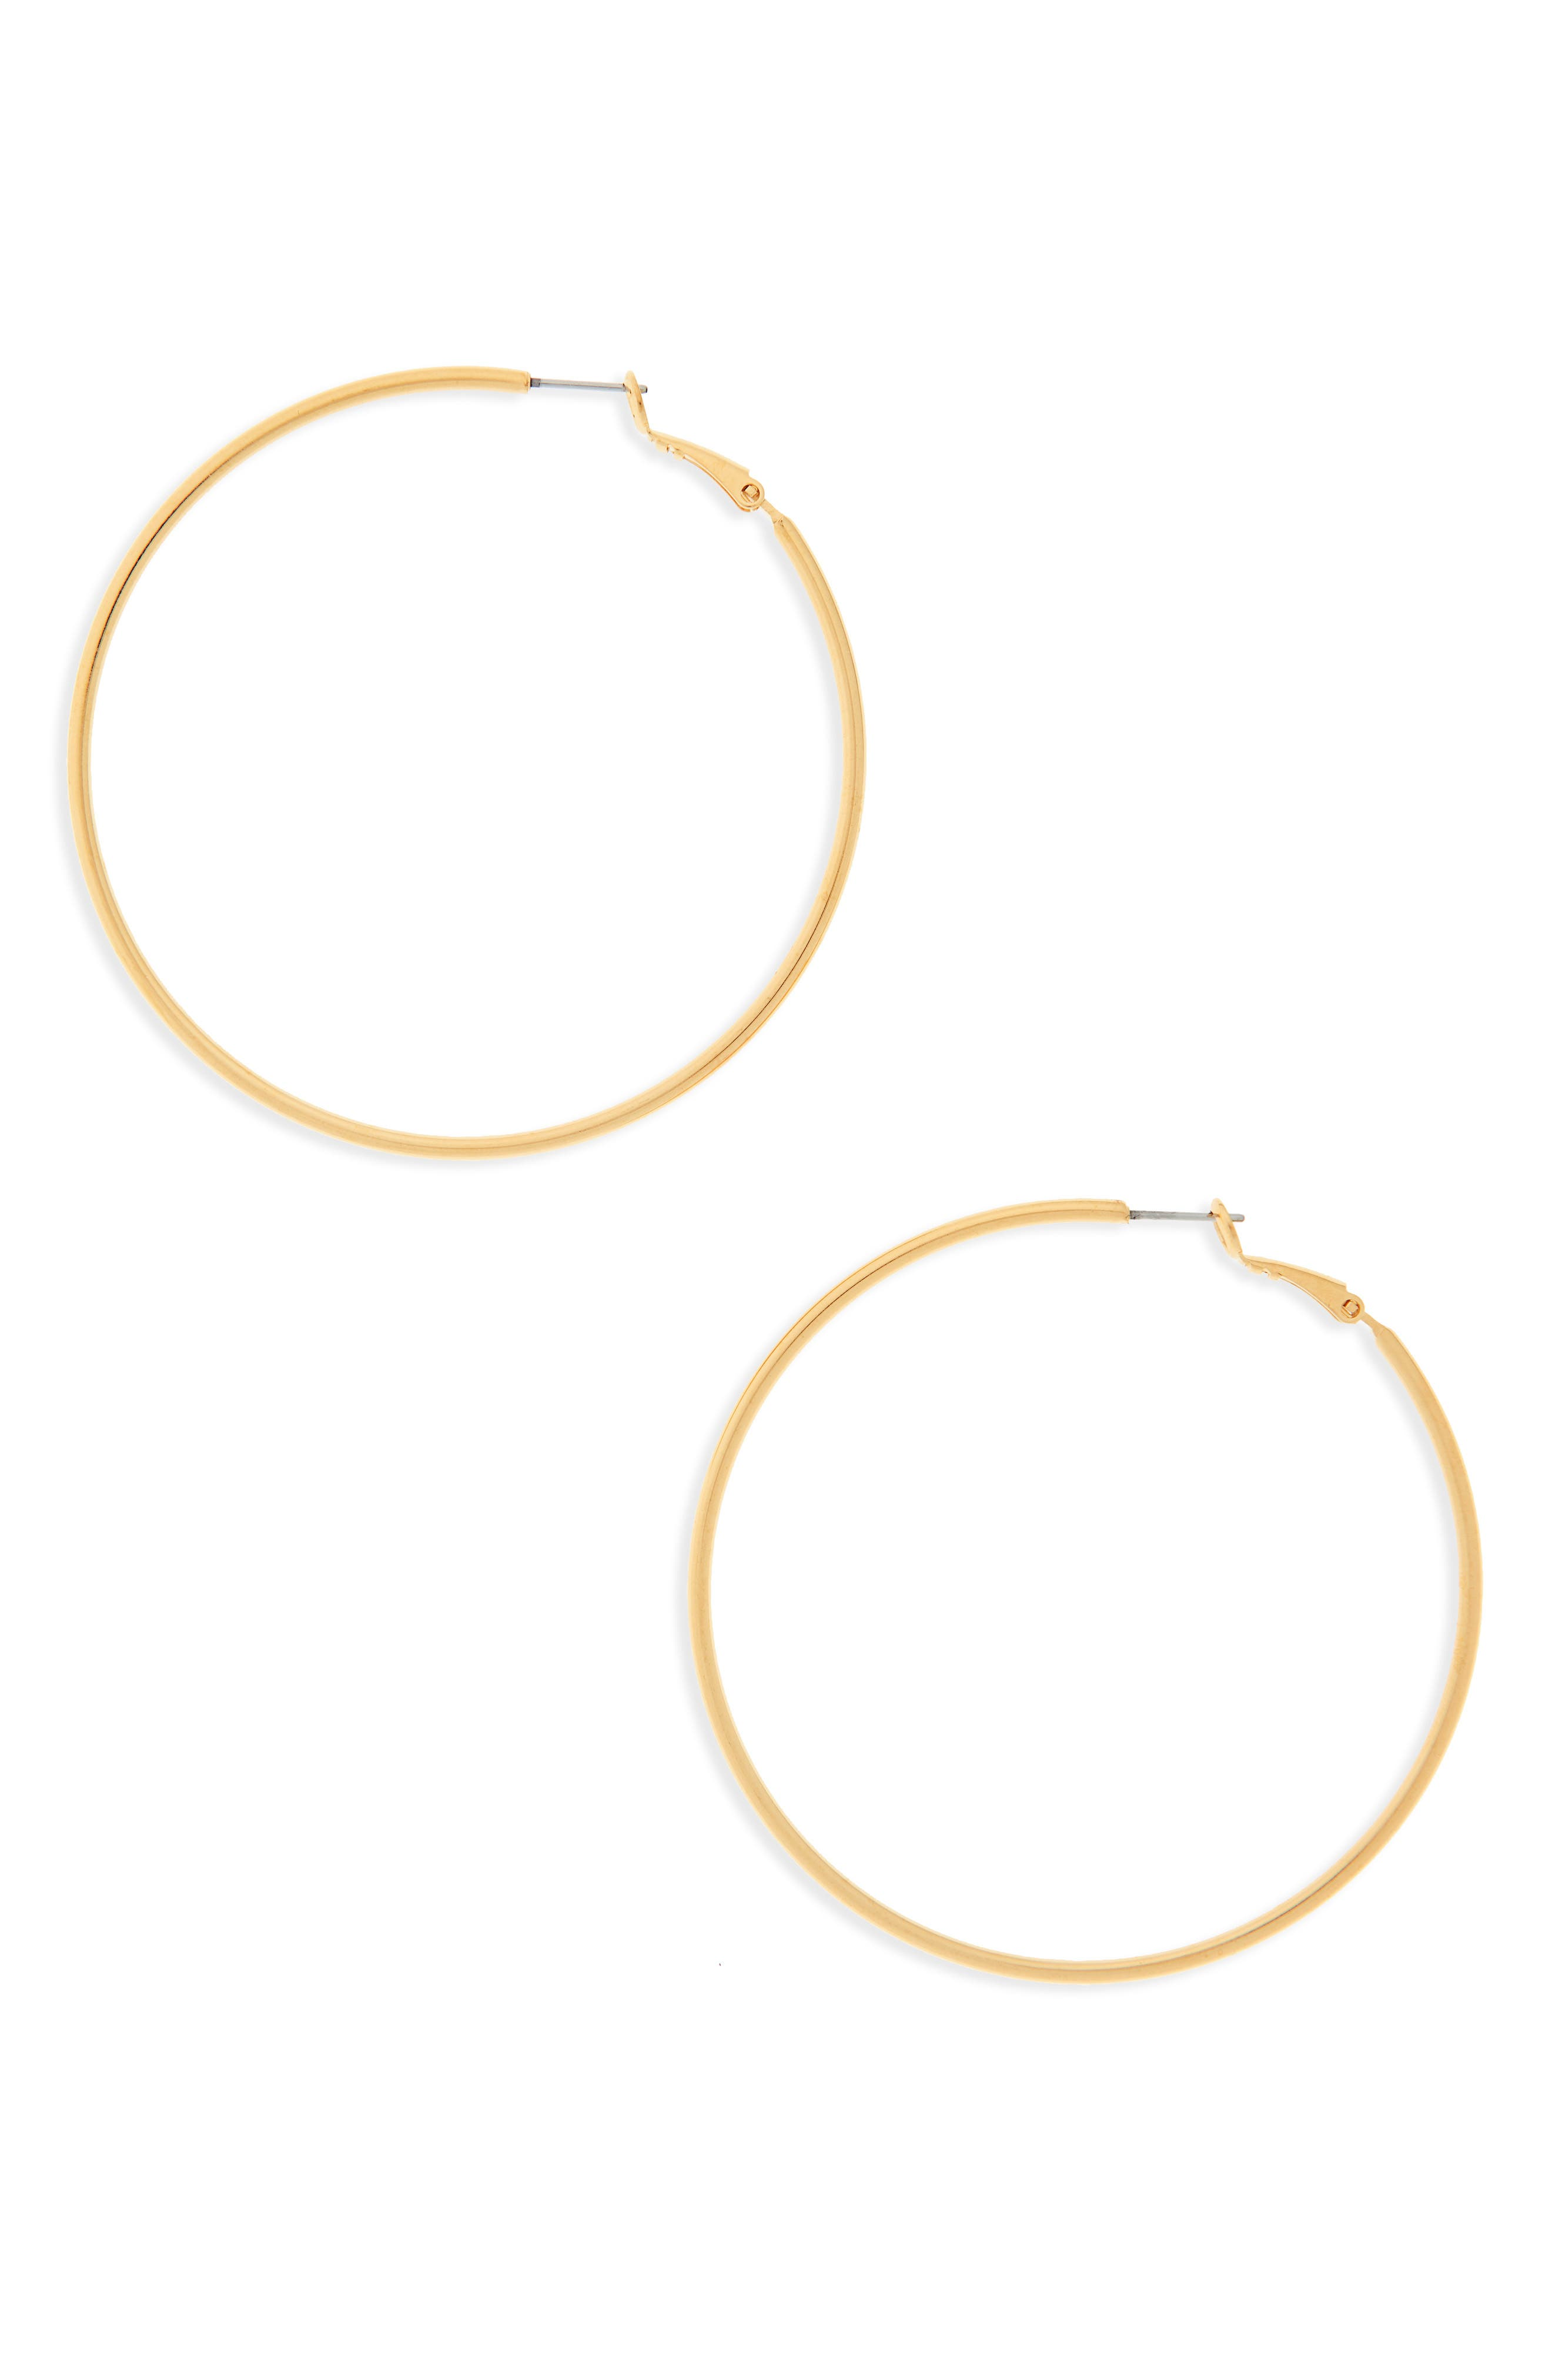 CAM Large Hoops in Gold